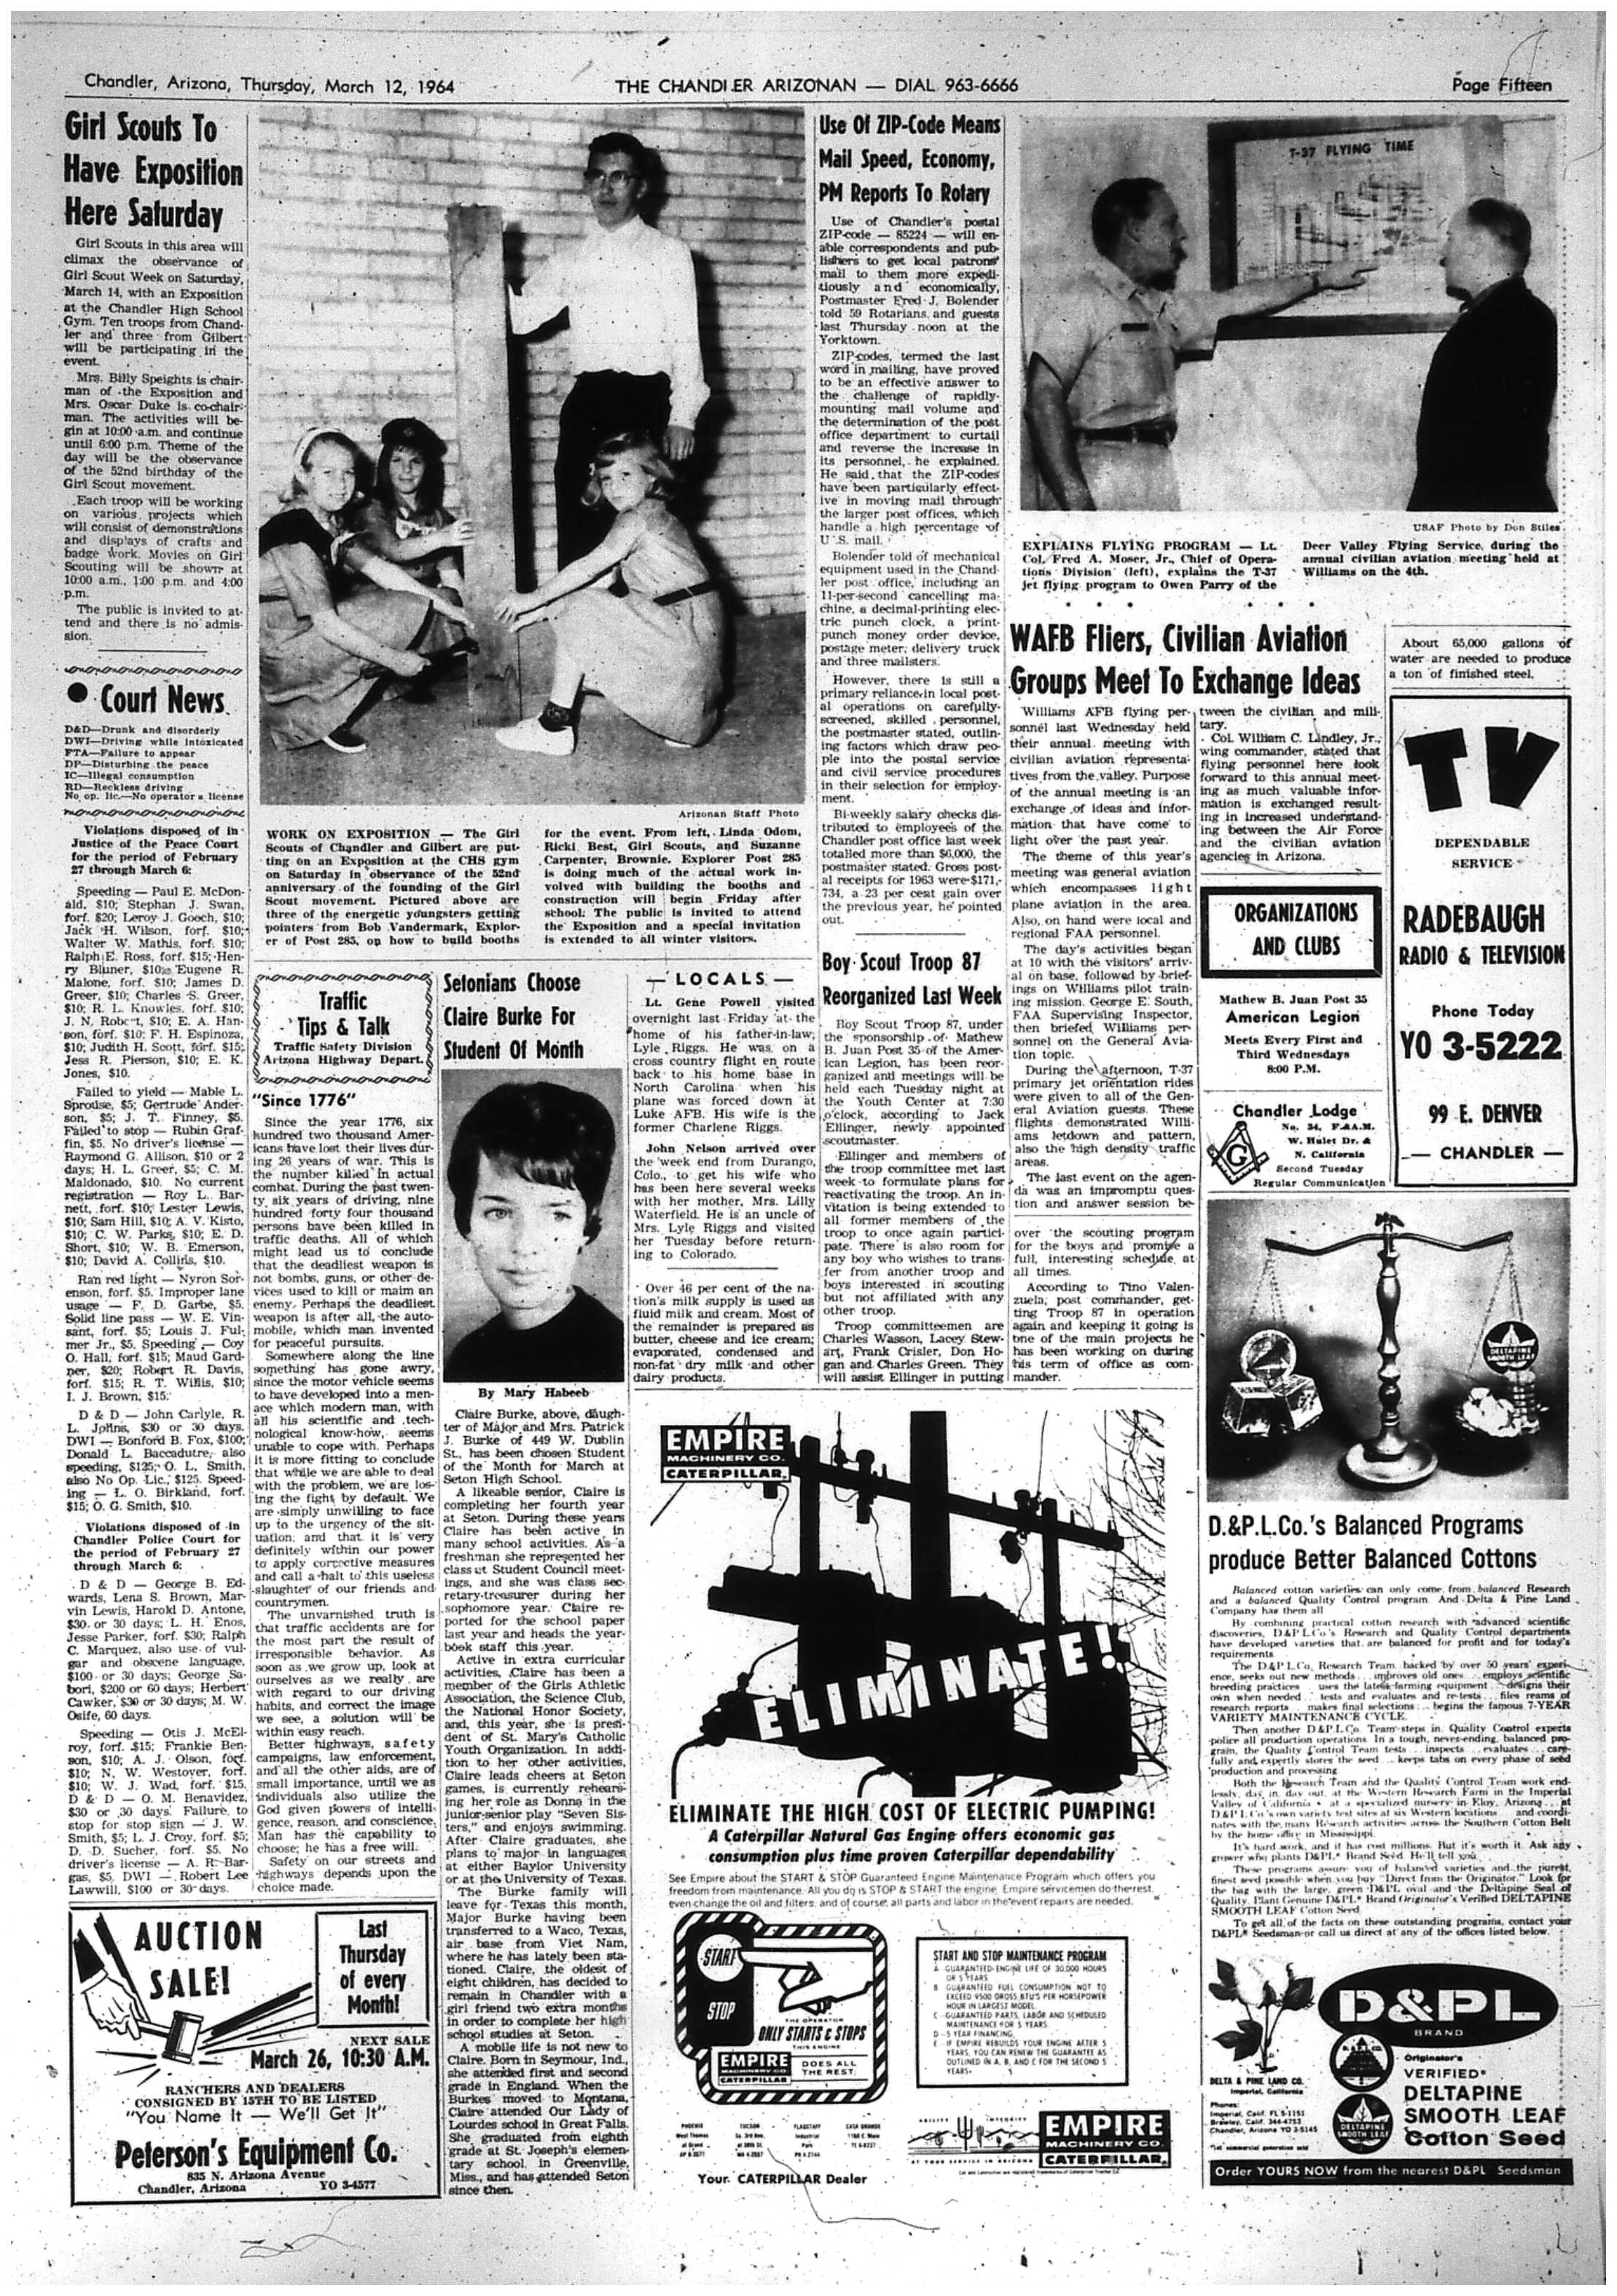 03-12-1964 - Page 15 .jpg